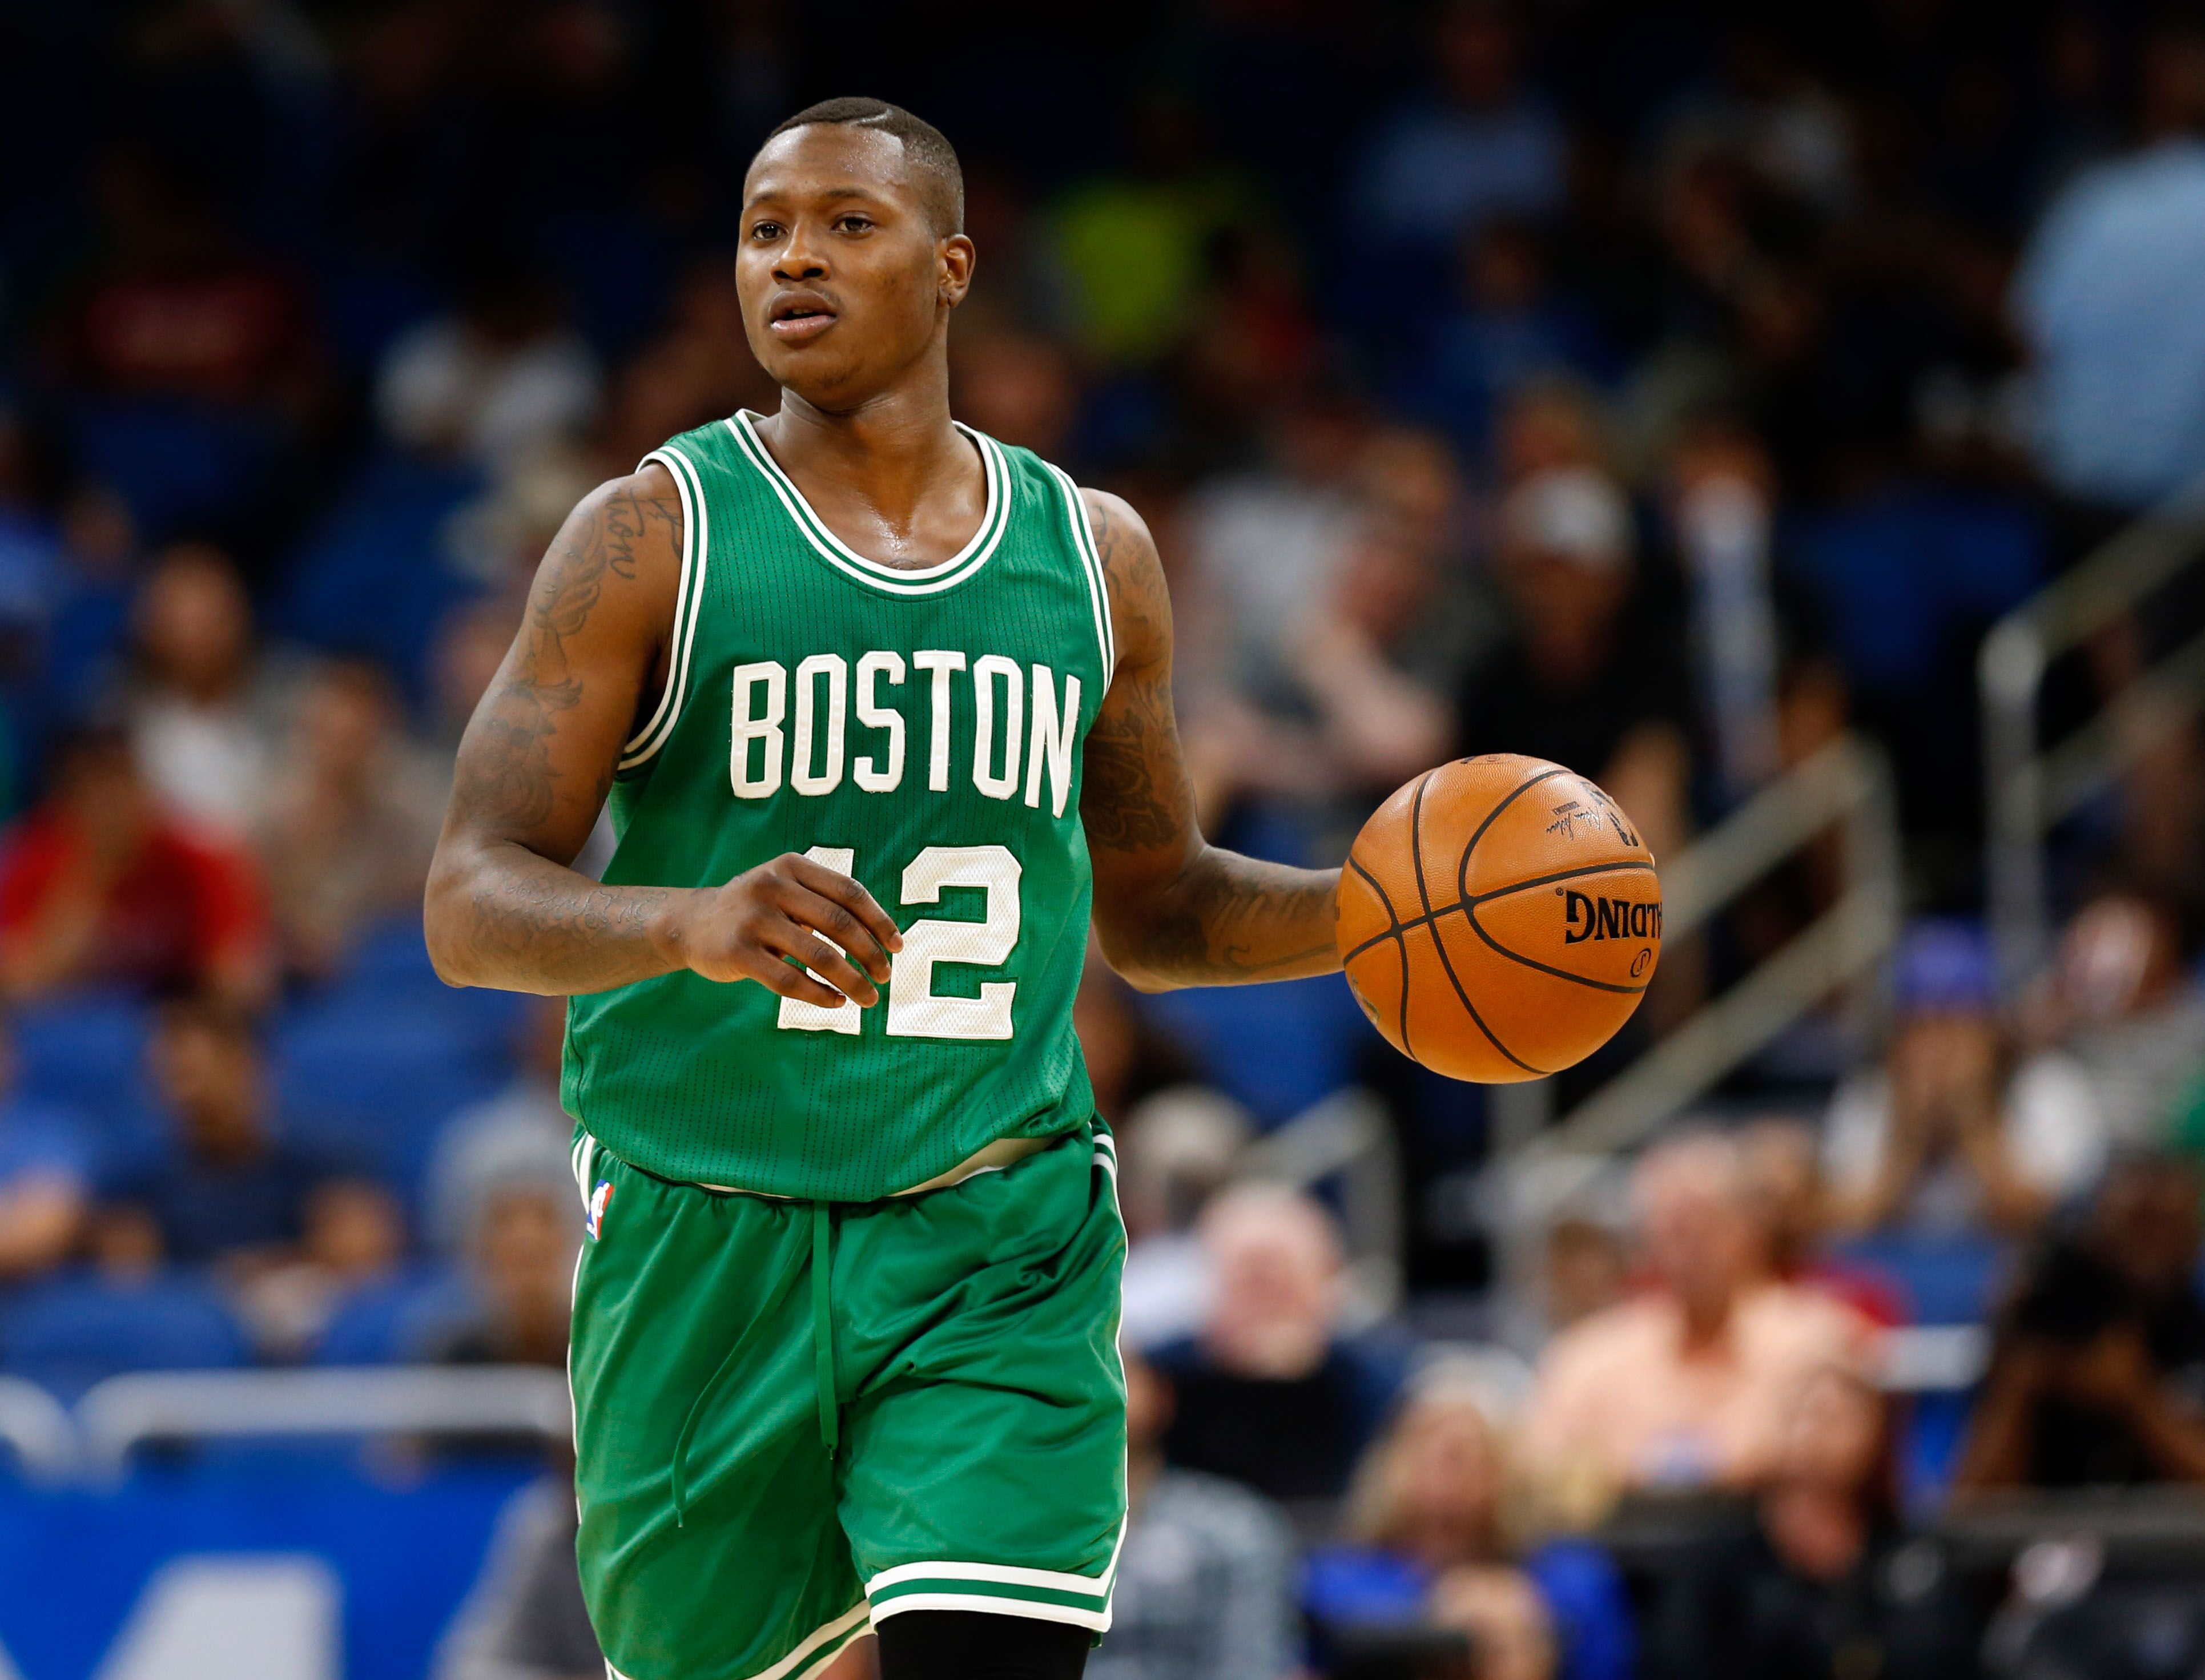 Terry Rozier: Terry Rozier's Confidence As A Three-Point Shooter Growing